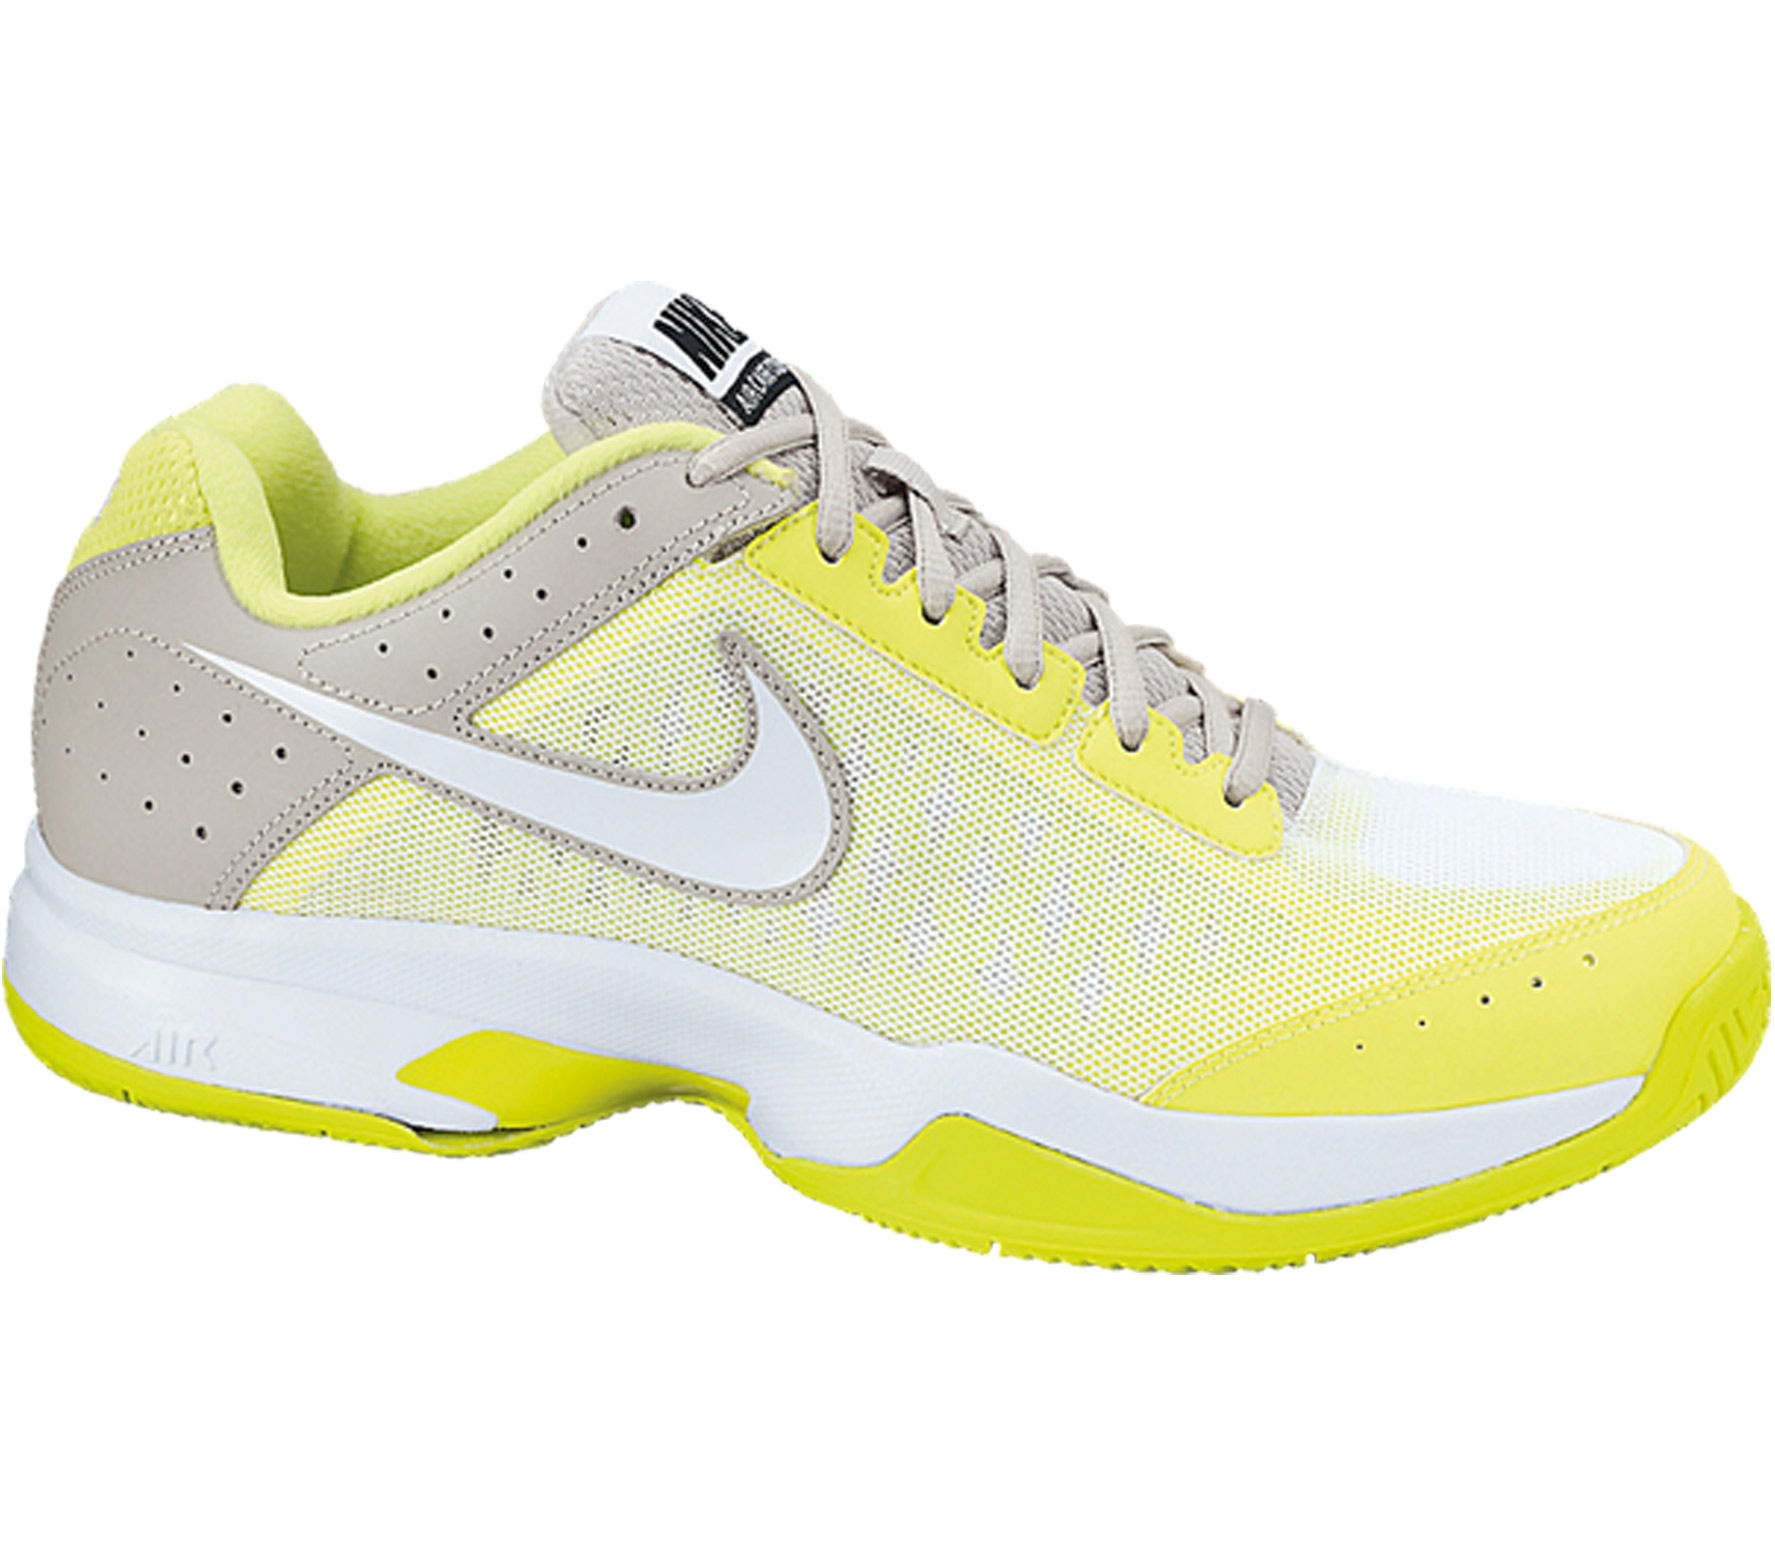 Cheap Neon Tennis Shoes